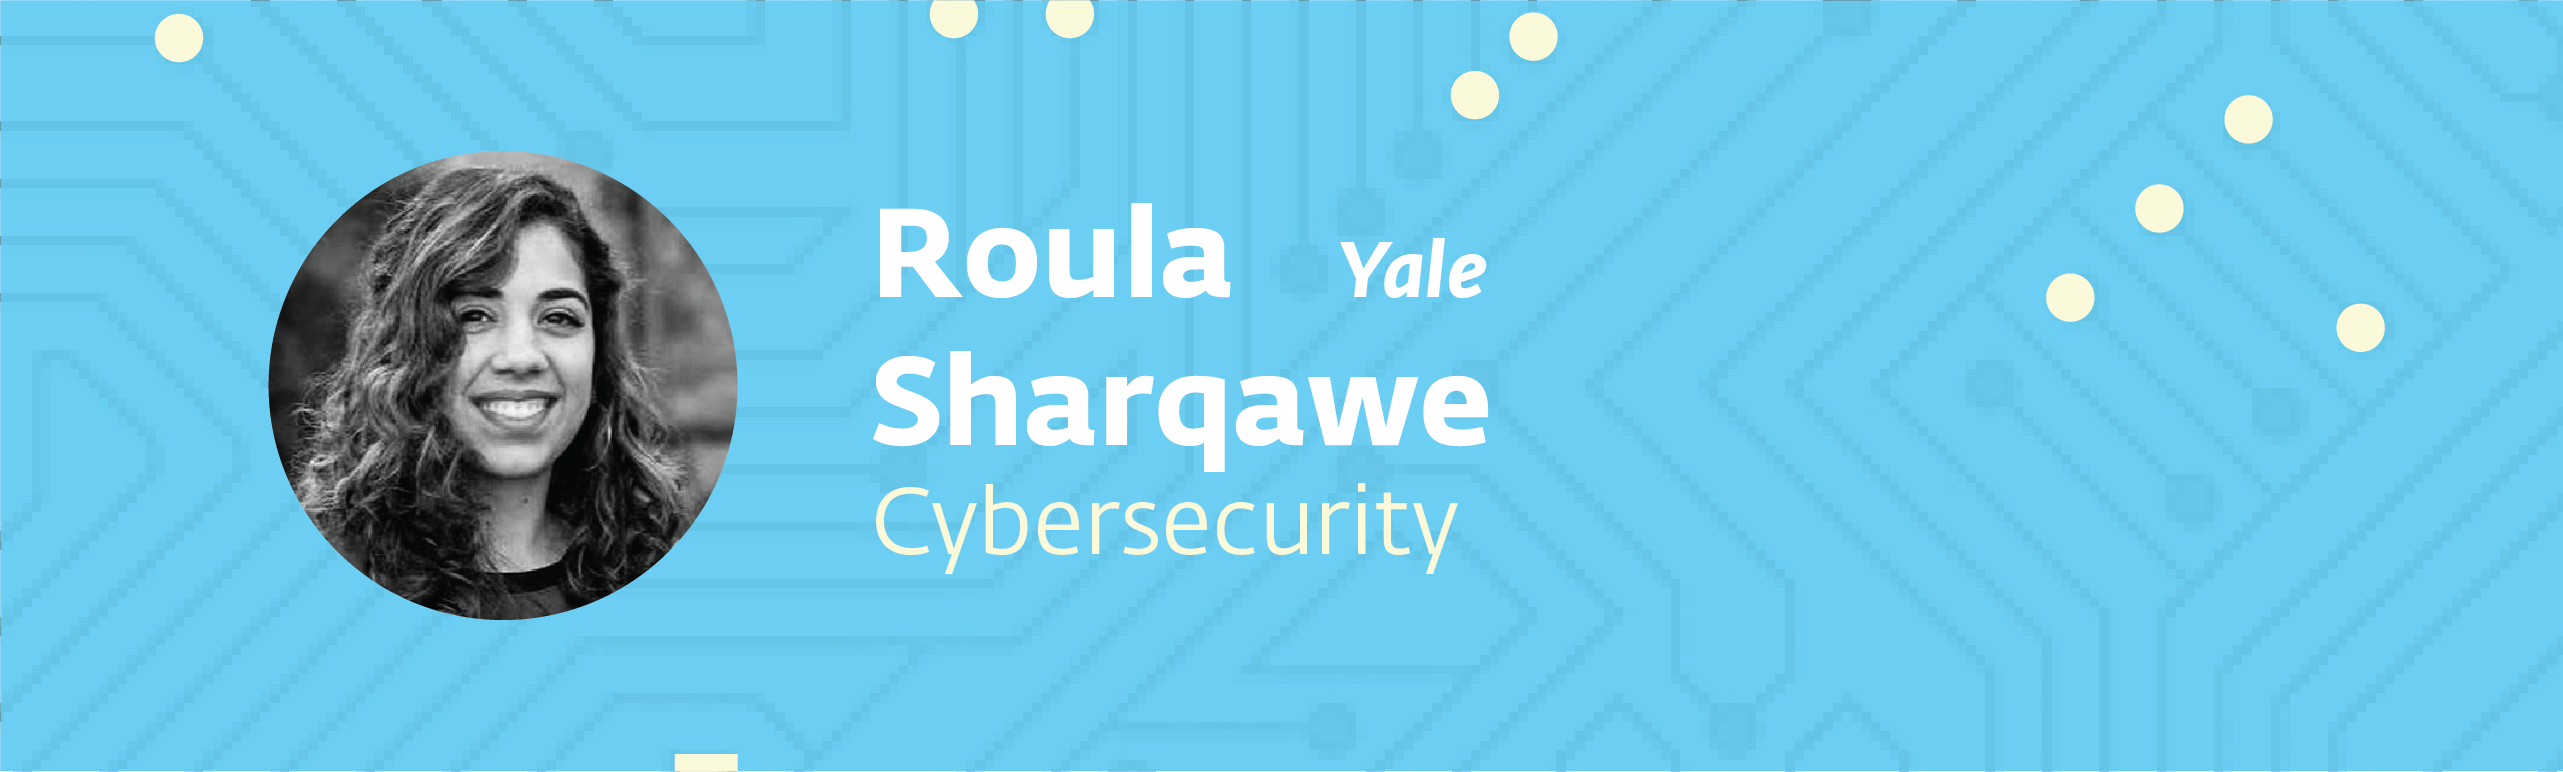 NewBanner for Page 13 - Cybersecurity